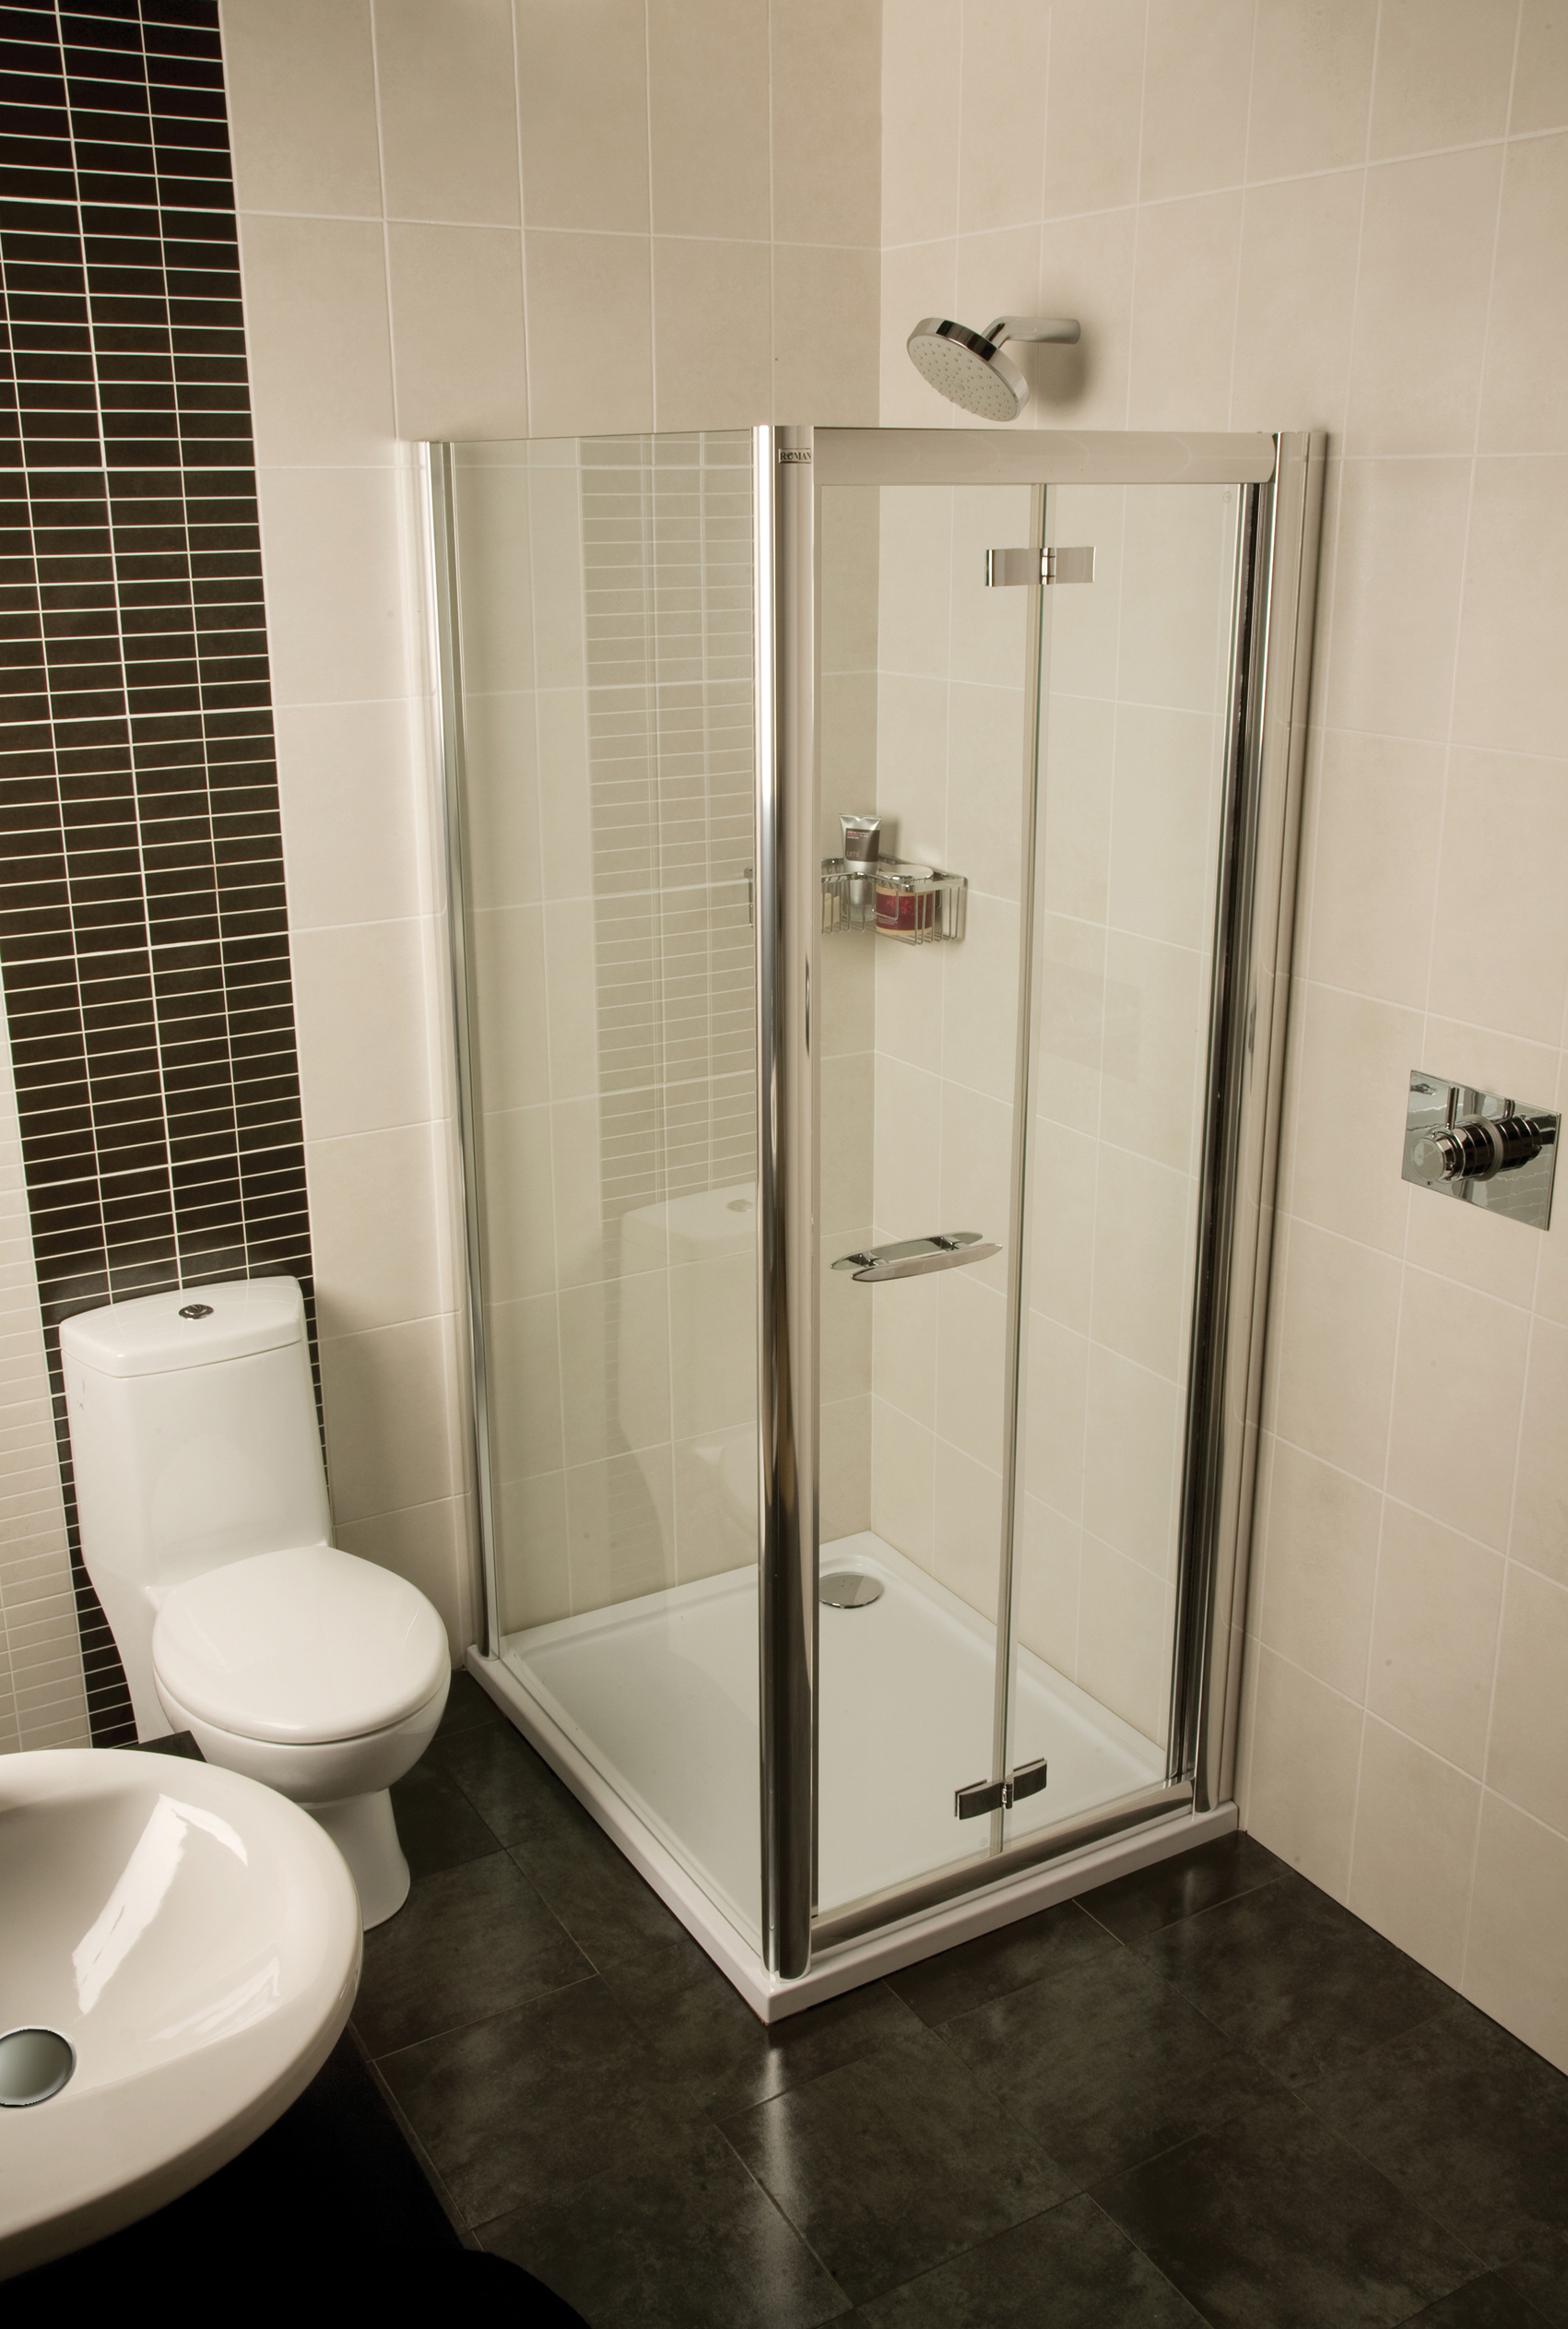 Shower Cubicles Small Bathrooms 28 Images Shower Stalls For Small Bathrooms Small Prefab